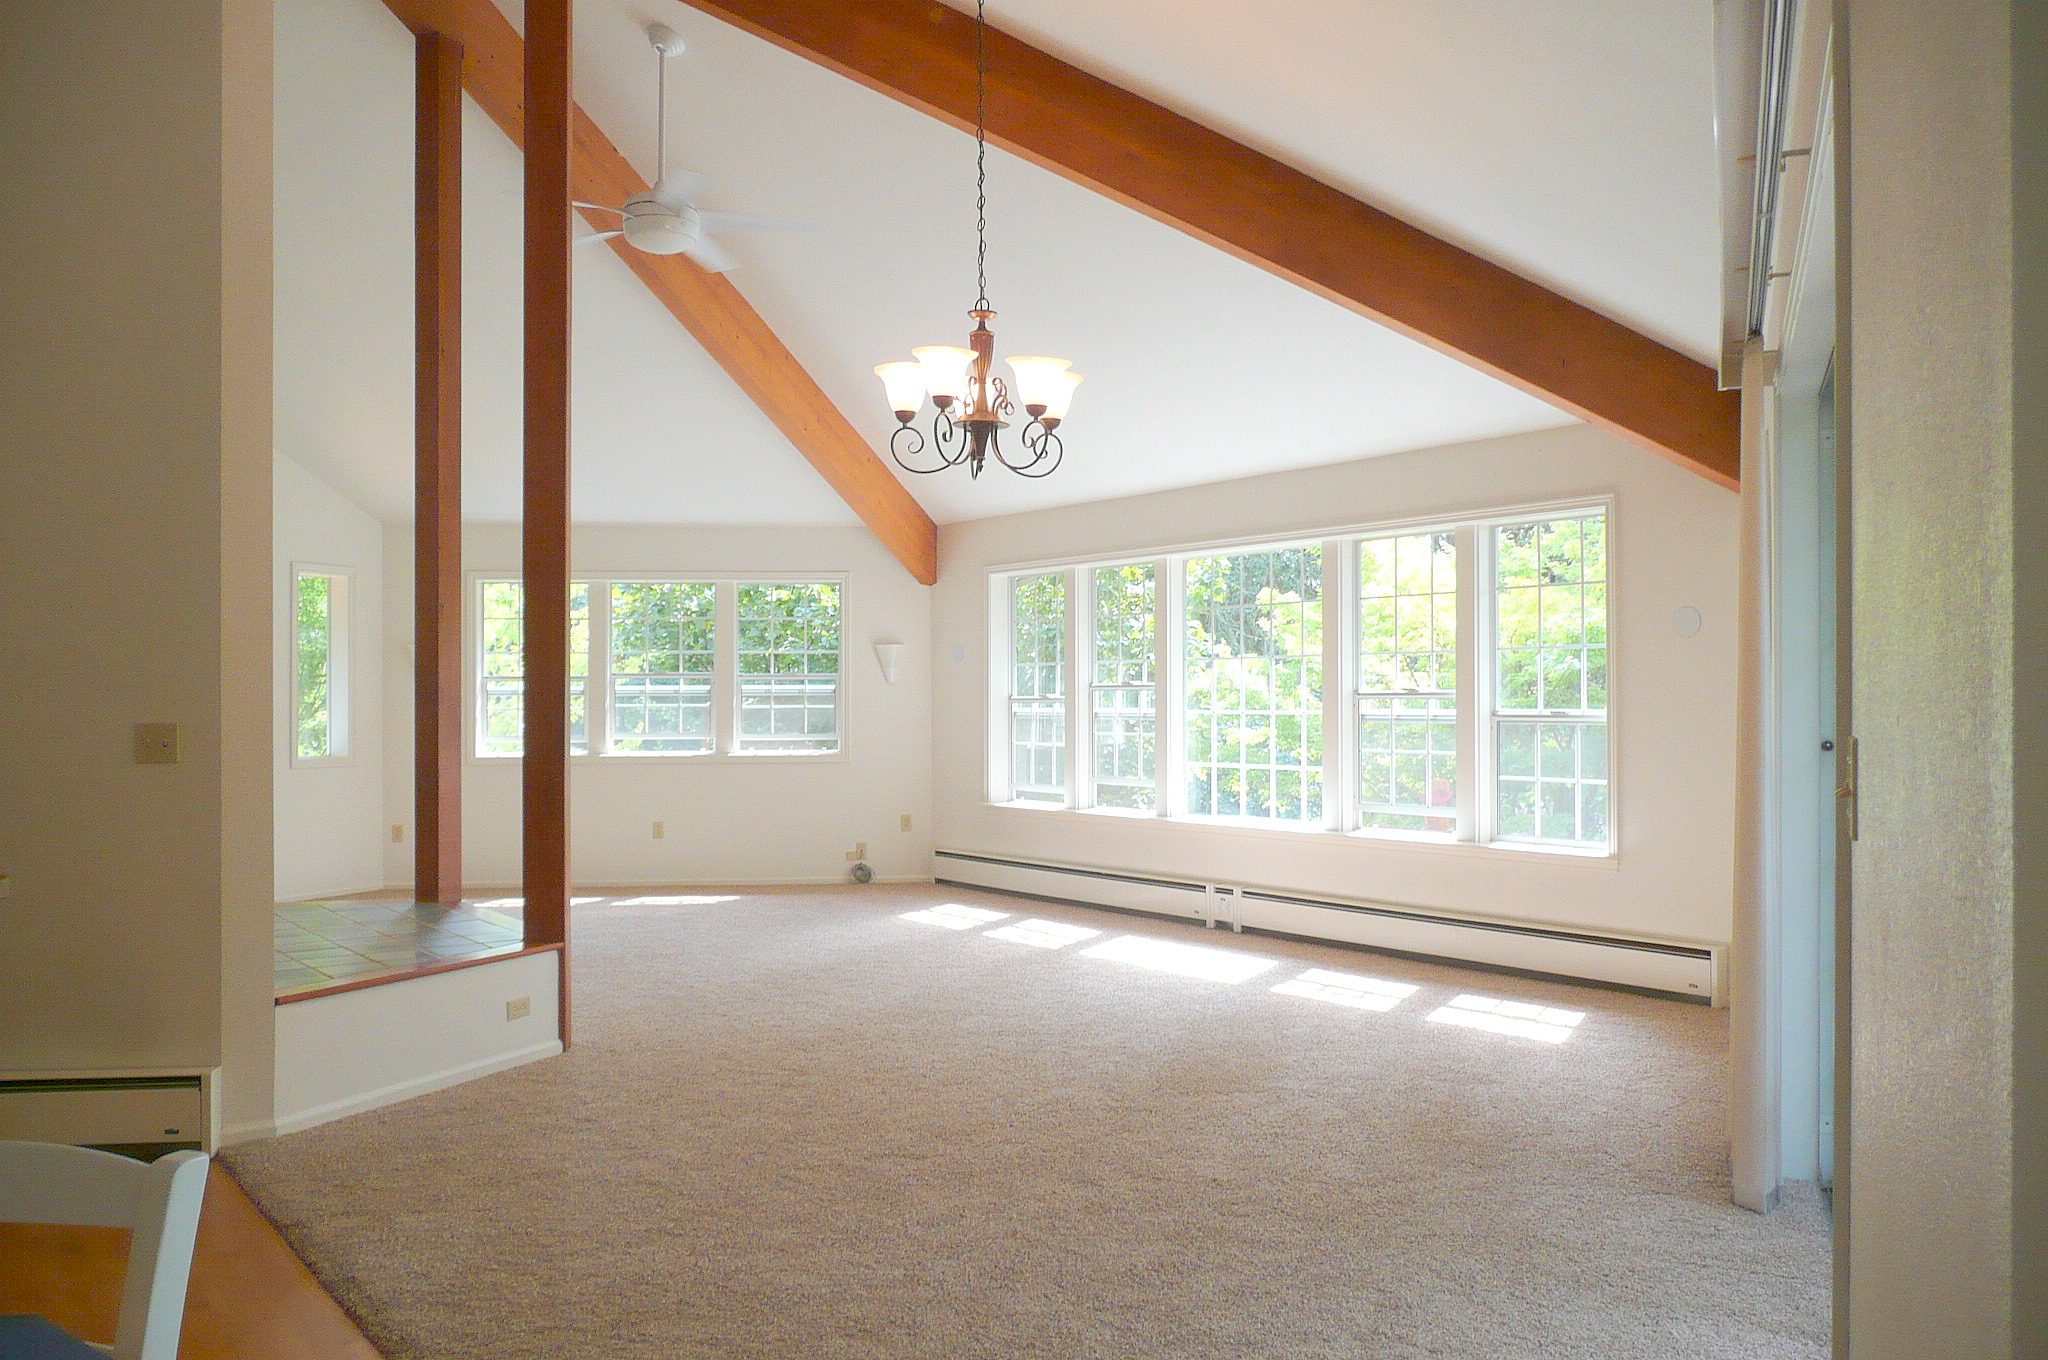 huge rooms can overwhelm buyers